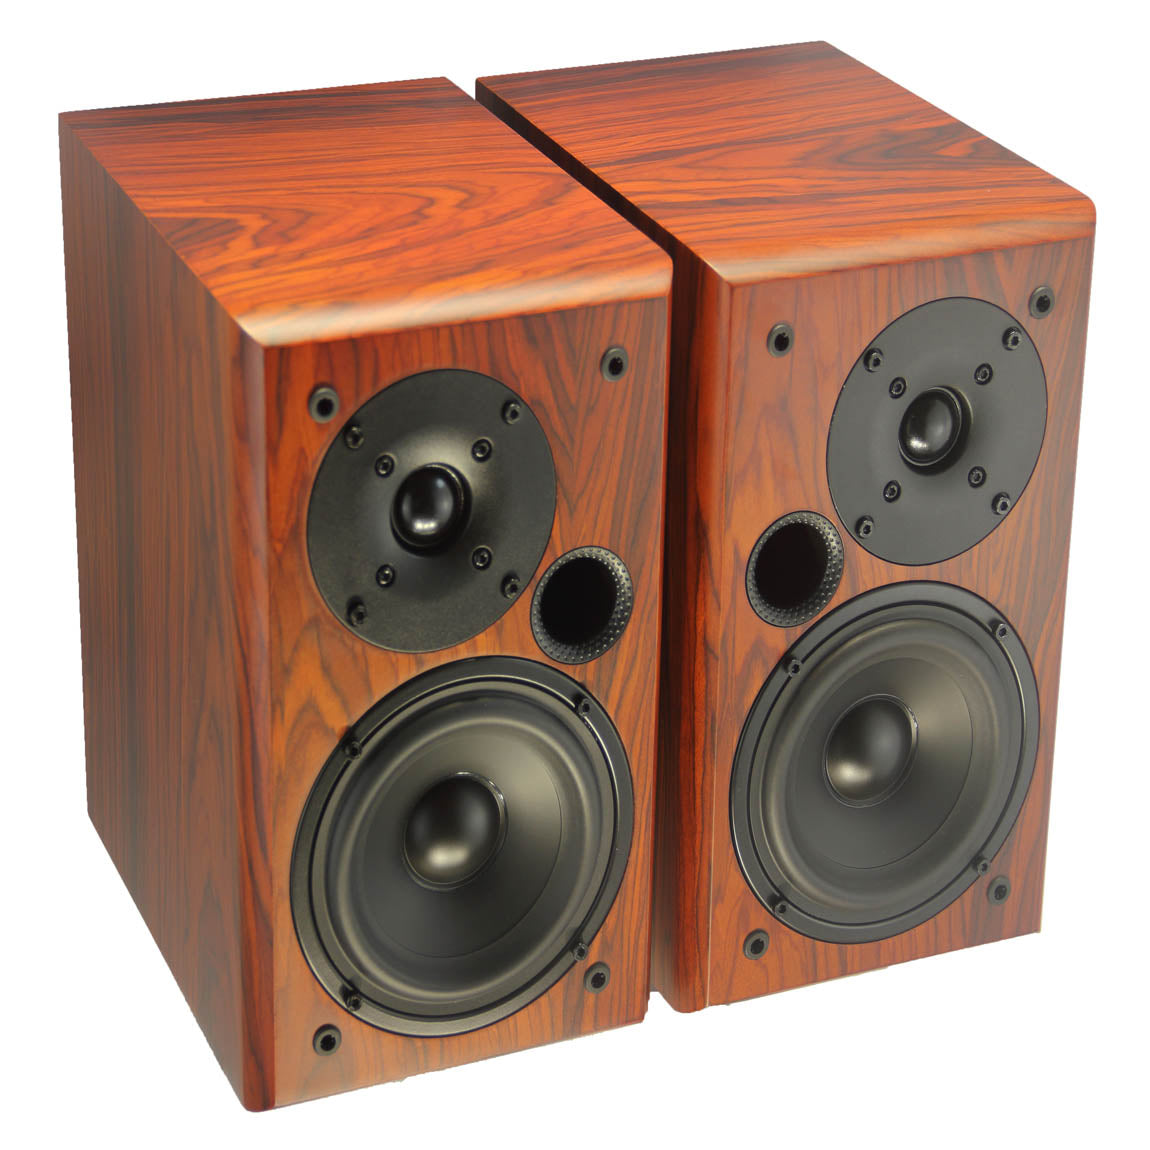 TUNERSYS Passive Bookshelf Speaker,5-inch Red Wood S162RD - Pair